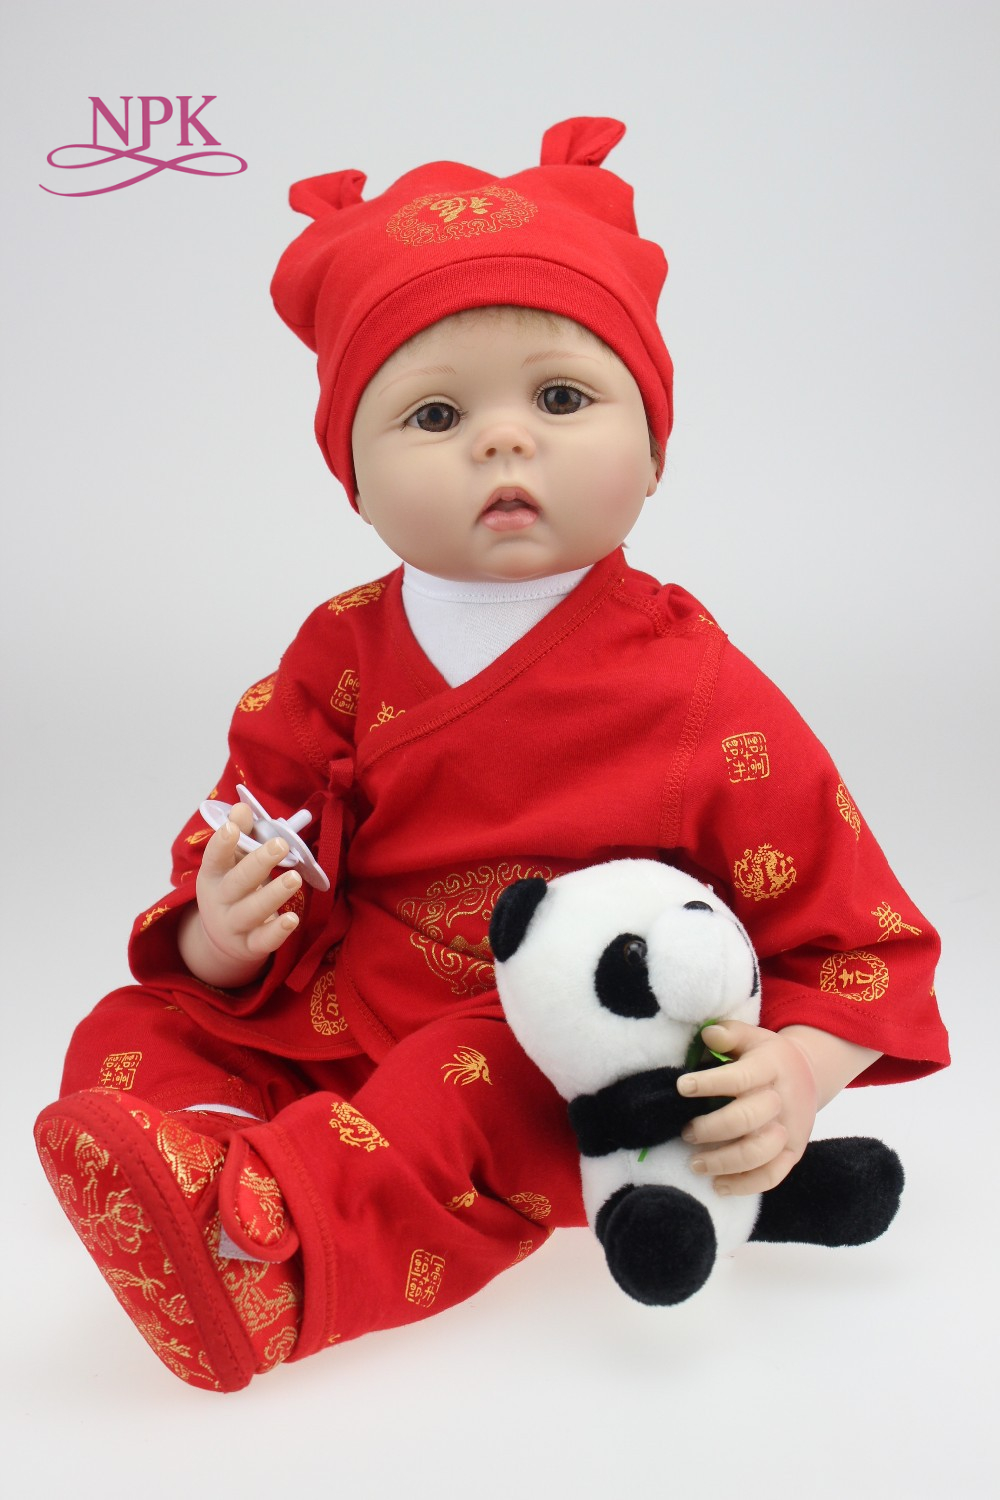 Здесь продается  NPK 2017 new hot sale lifelike reborn baby doll wholesale baby dolls Christmas gift for girl baby  Игрушки и Хобби